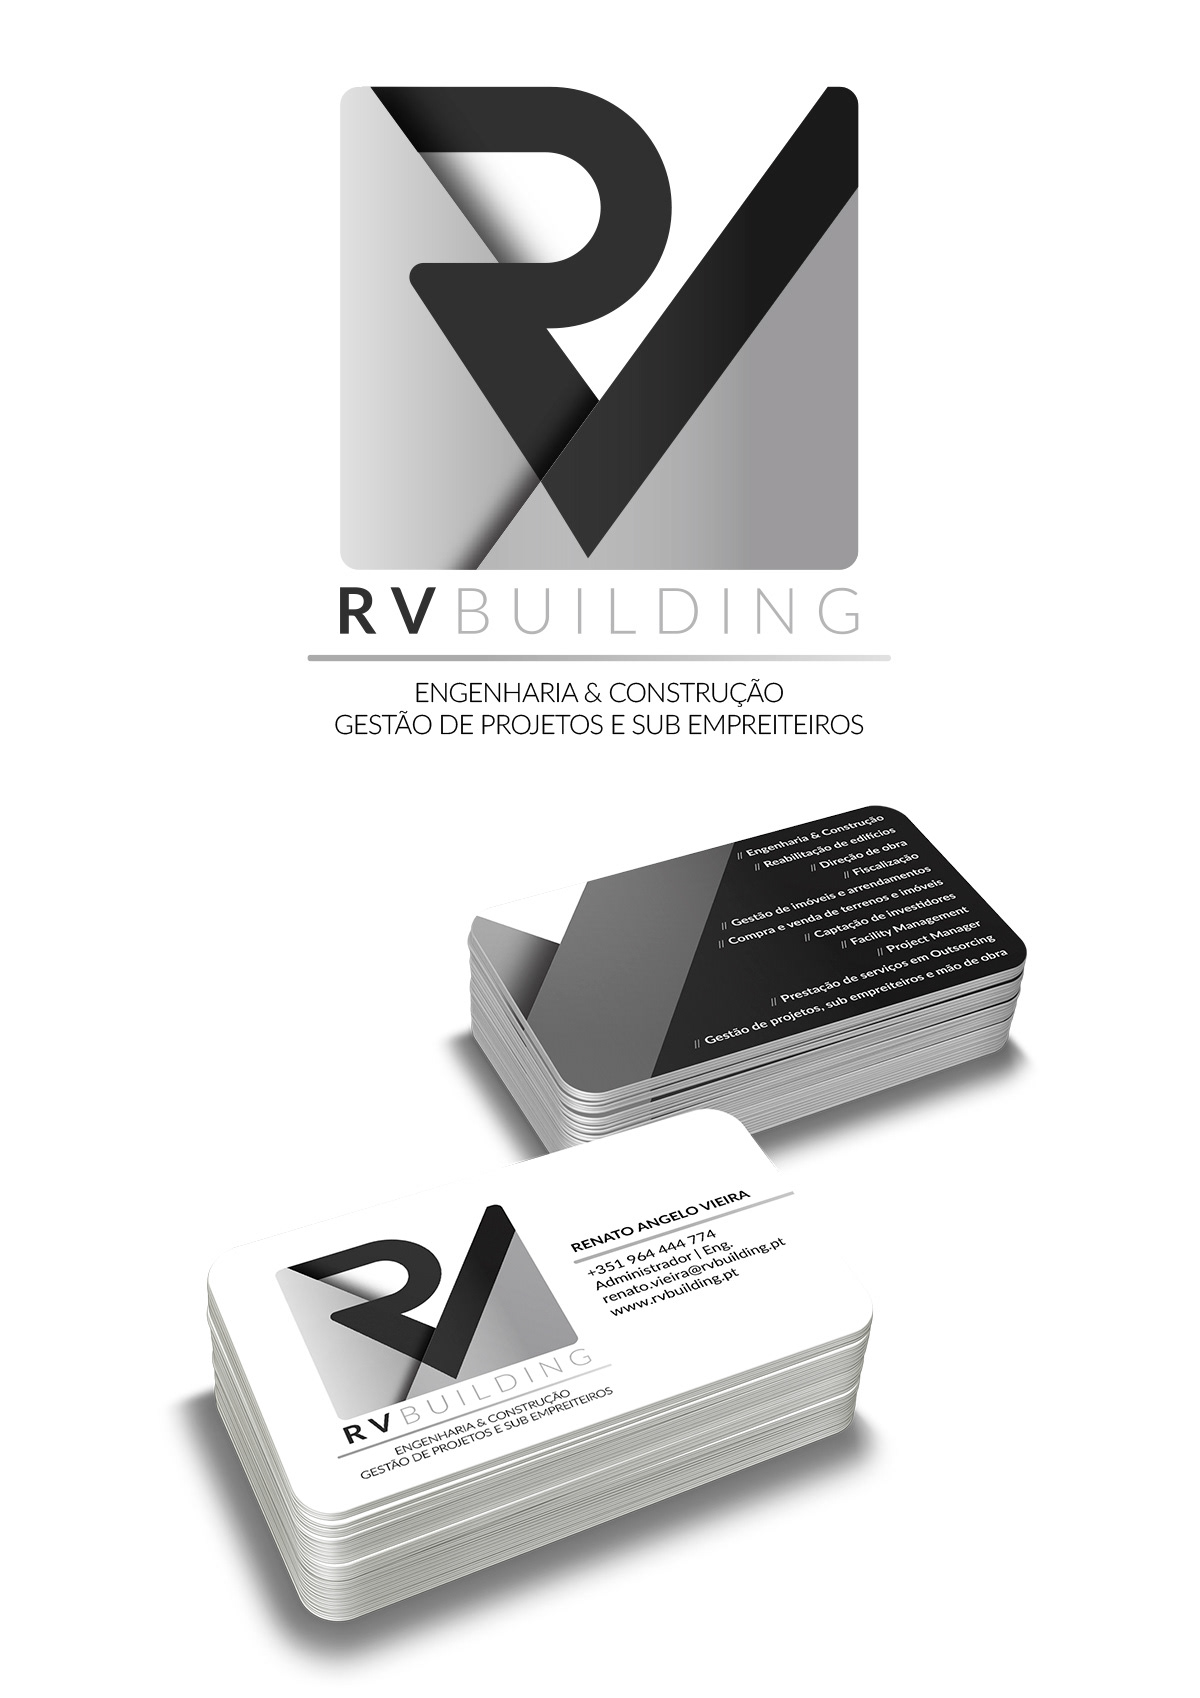 Nusa creative design rv building logo business cards and webdesign rvbuilding reheart Images